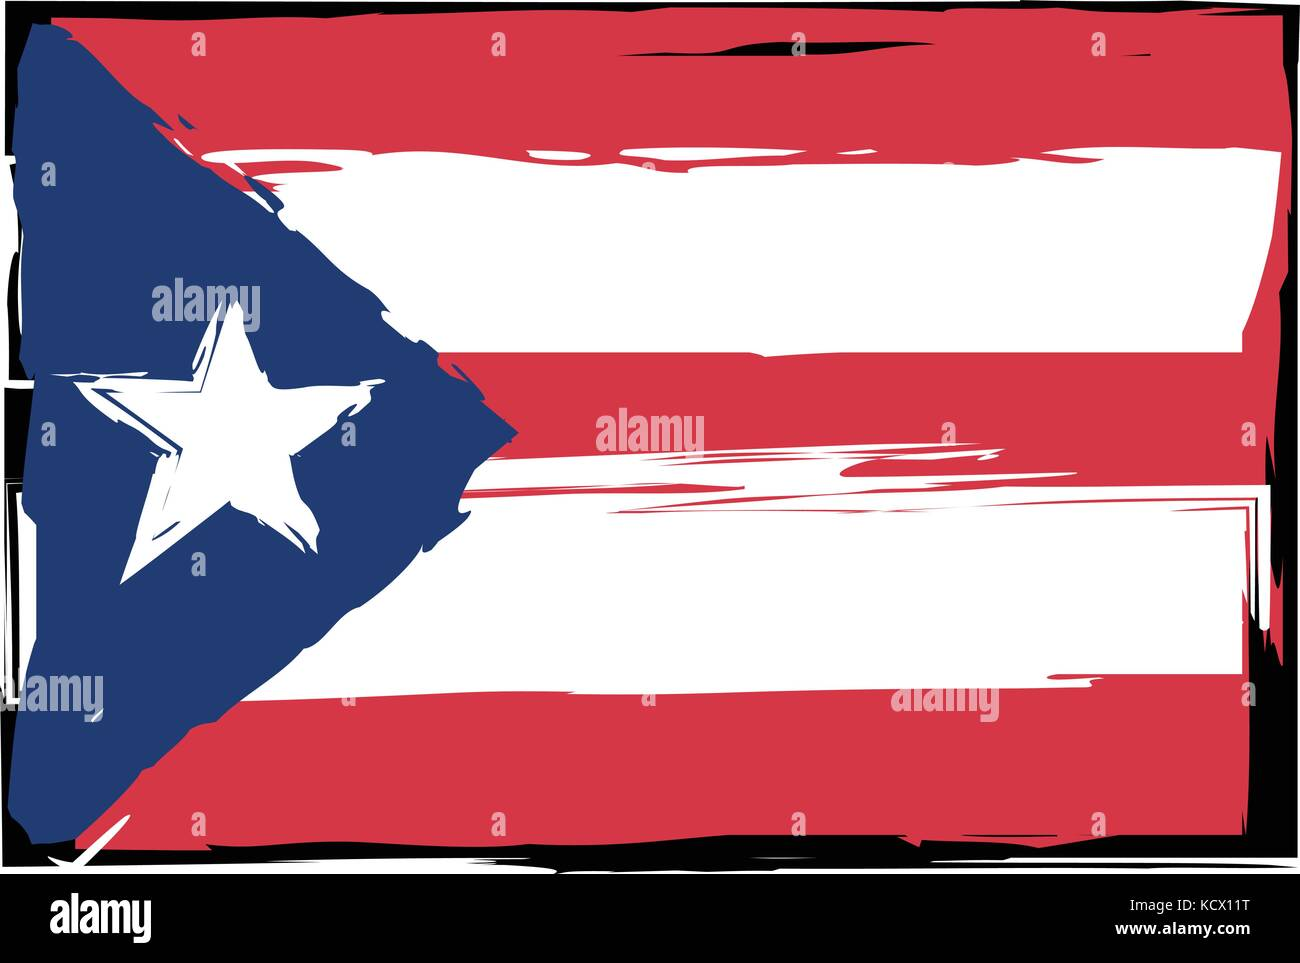 Grunge puerto rico flag or banner vector illustration stock vector grunge puerto rico flag or banner vector illustration biocorpaavc Image collections